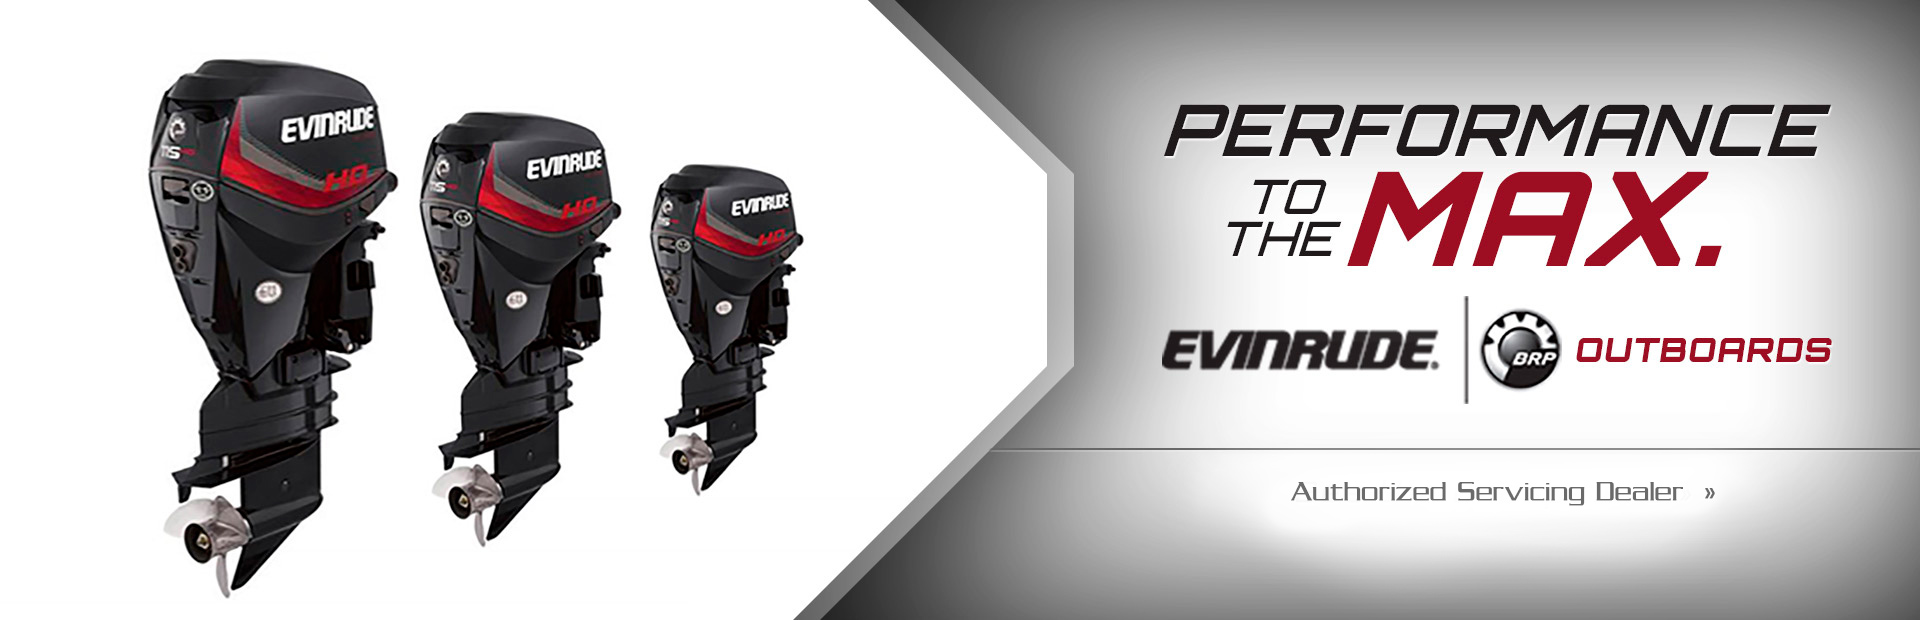 Evinrude Outboards. Performance to the max! Click here to find out more!